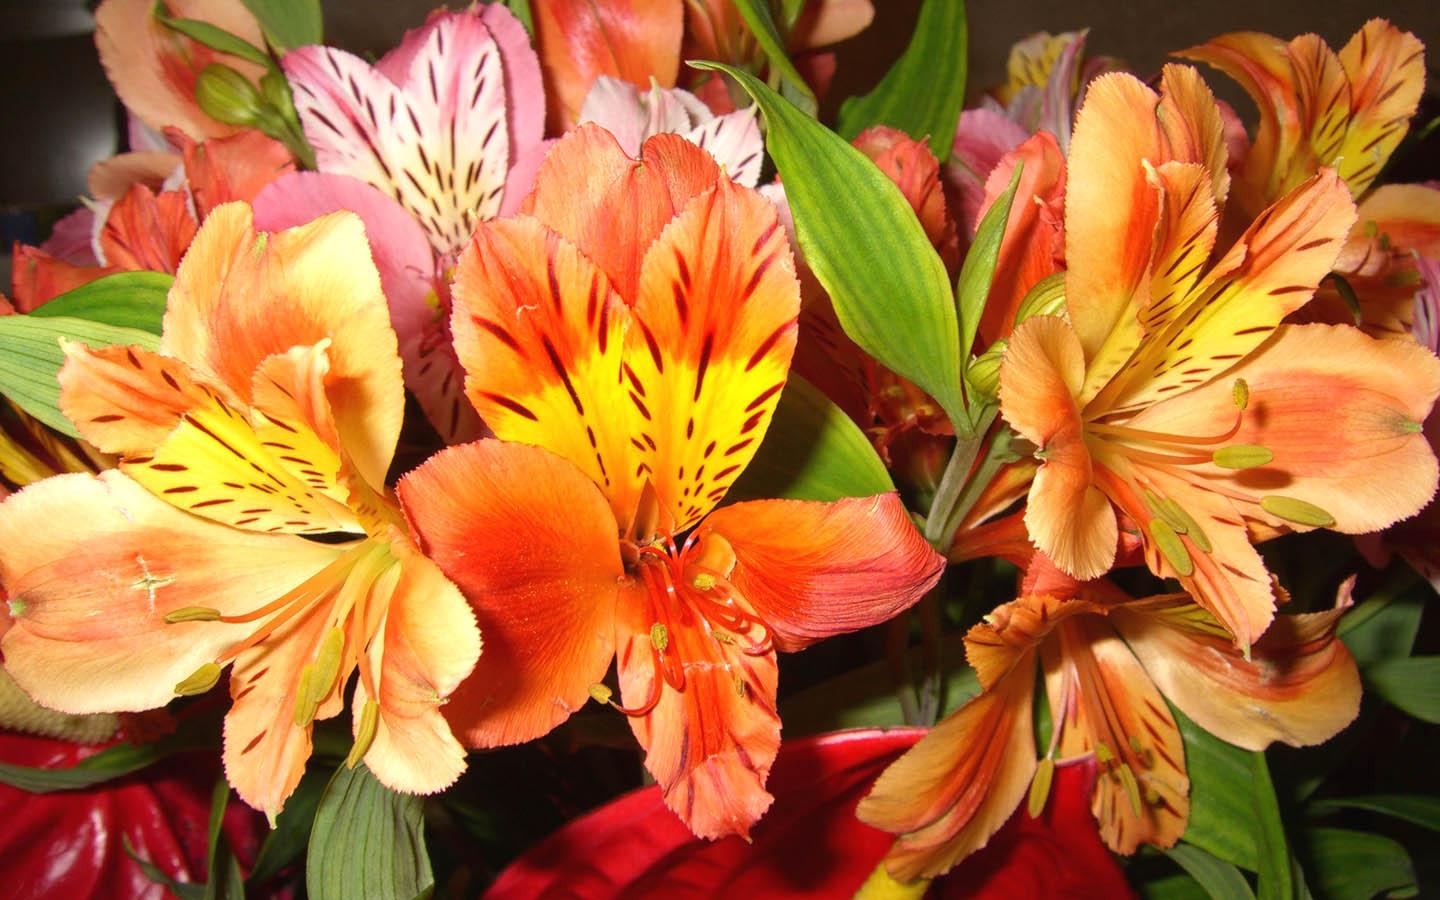 Alstroemeria - The Lily of the Incas | kinds of ornamental ...